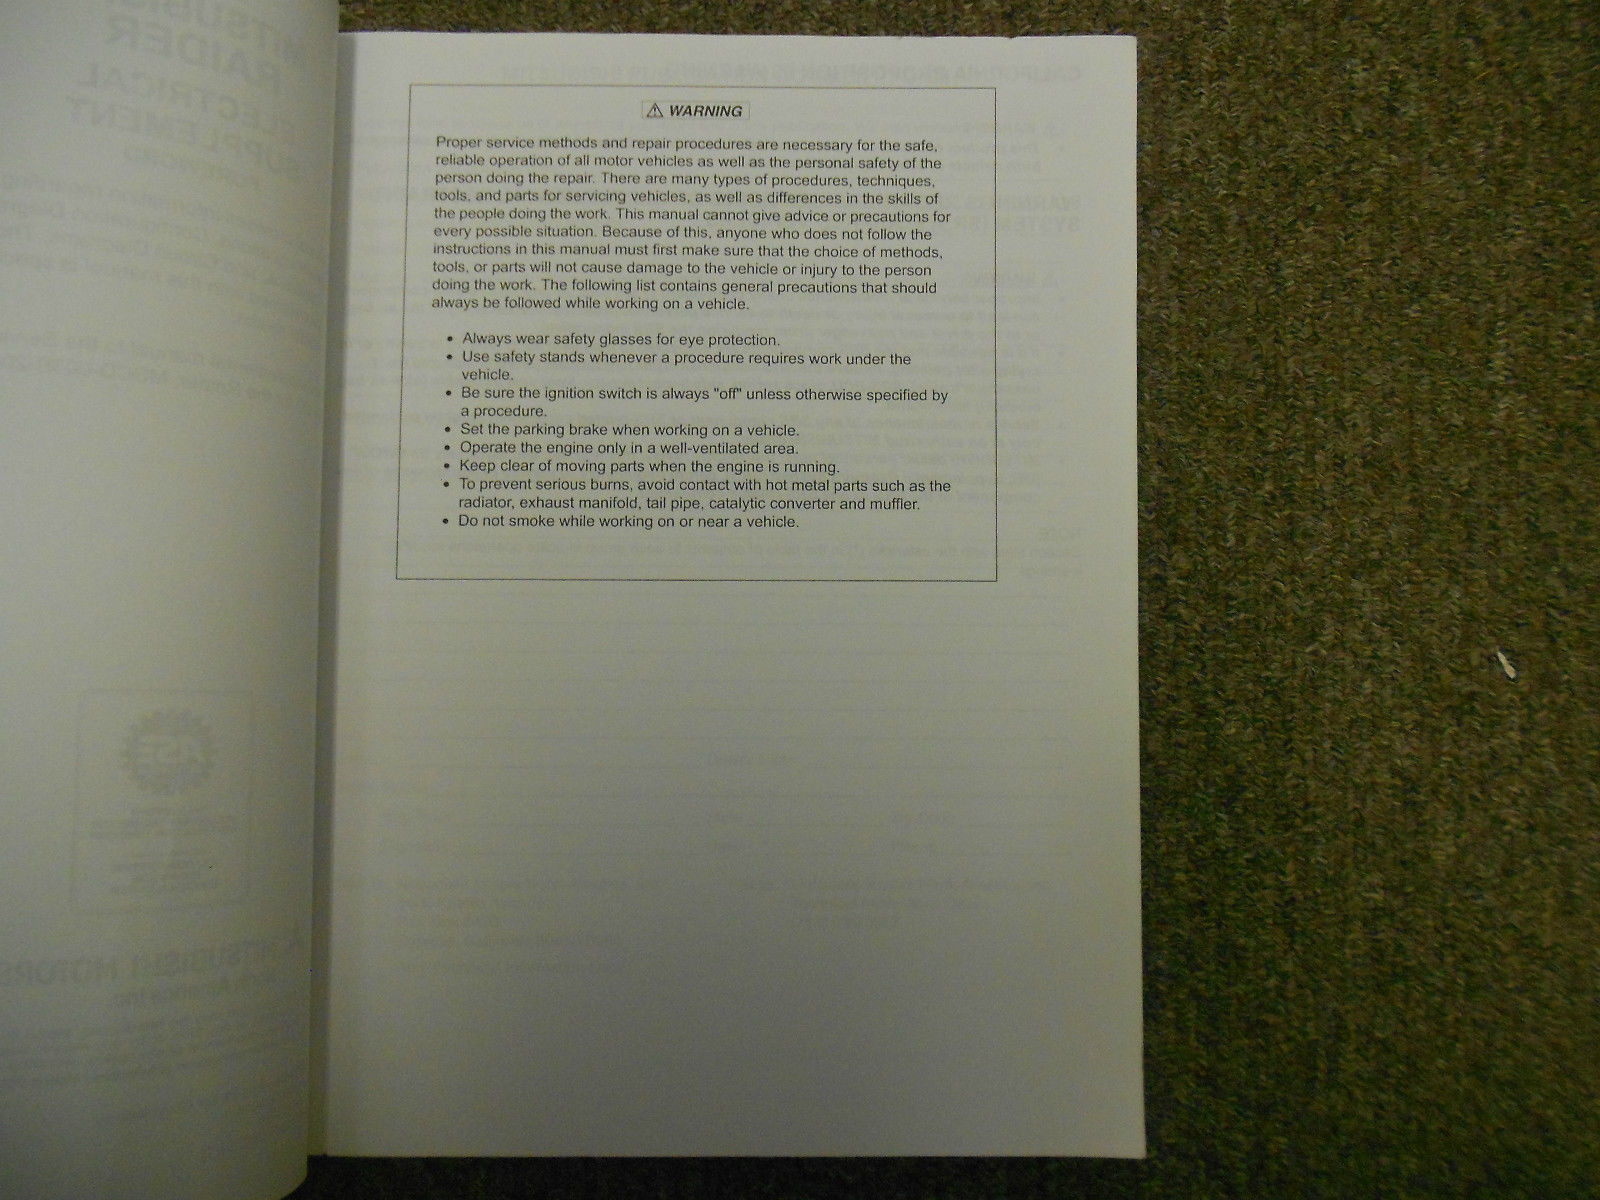 2007 MITSUBISHI Raider Electrical Supplement Service Repair Shop Manual WORN 07 image 3